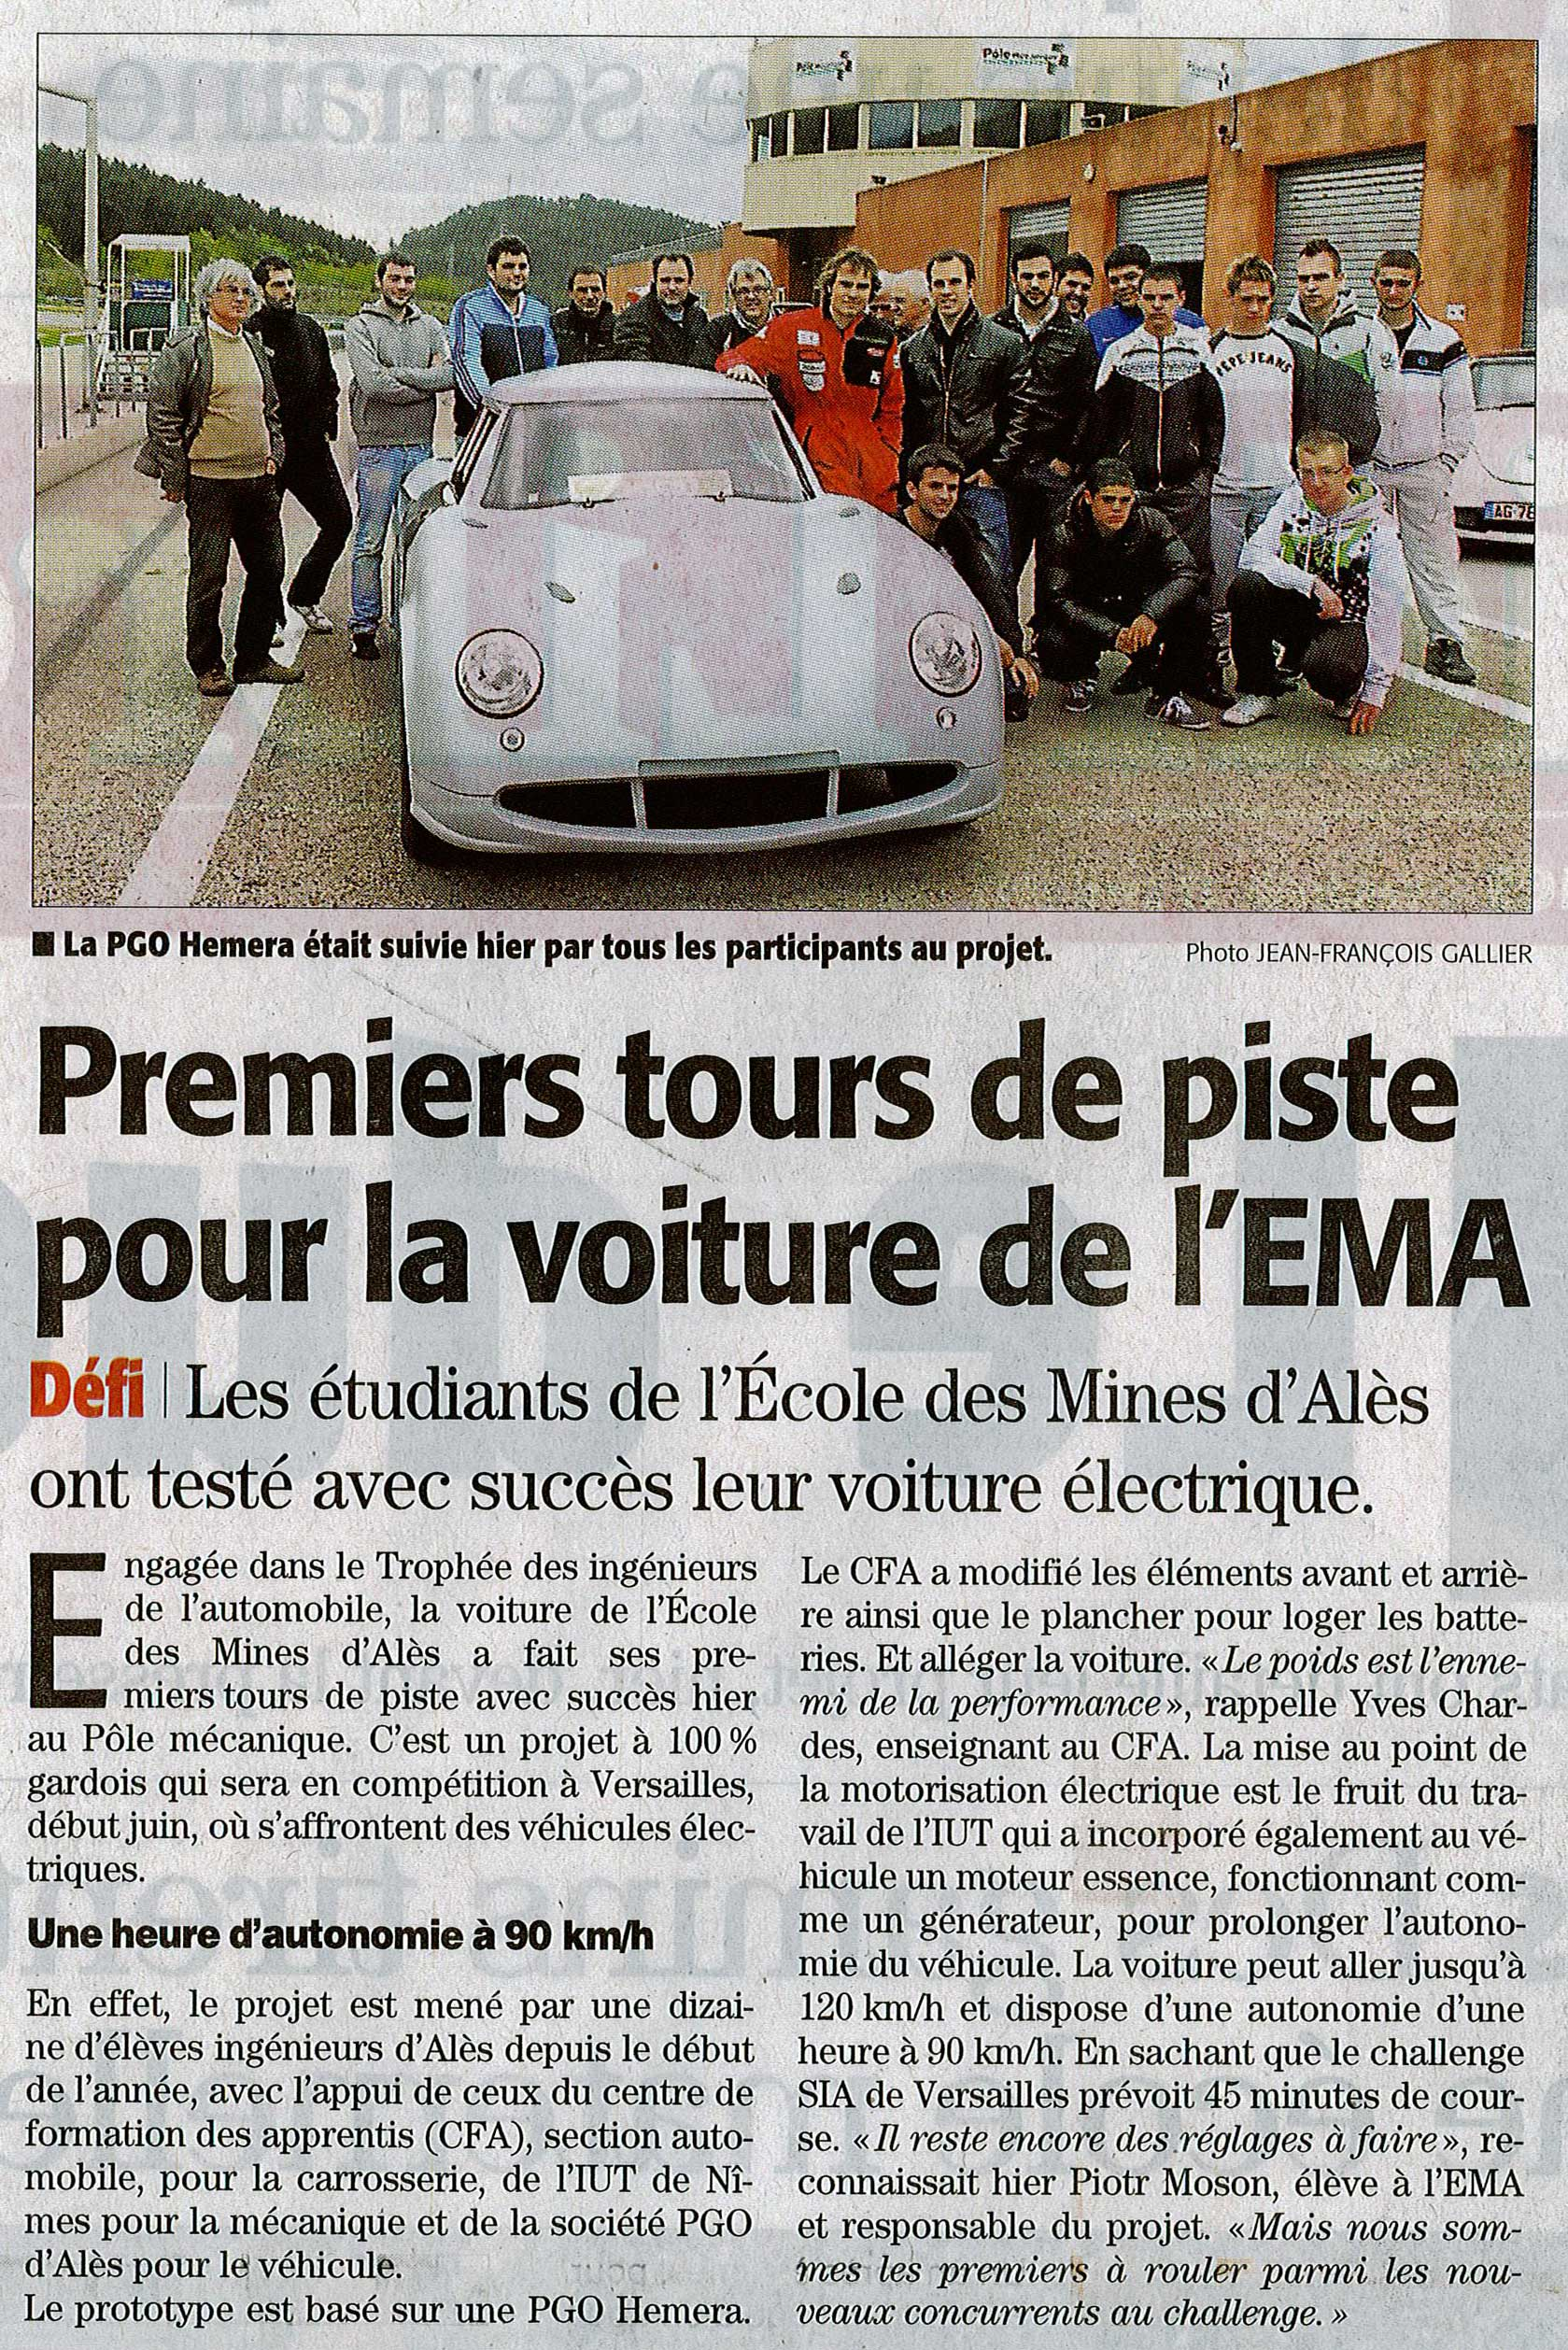 Dernier article presse